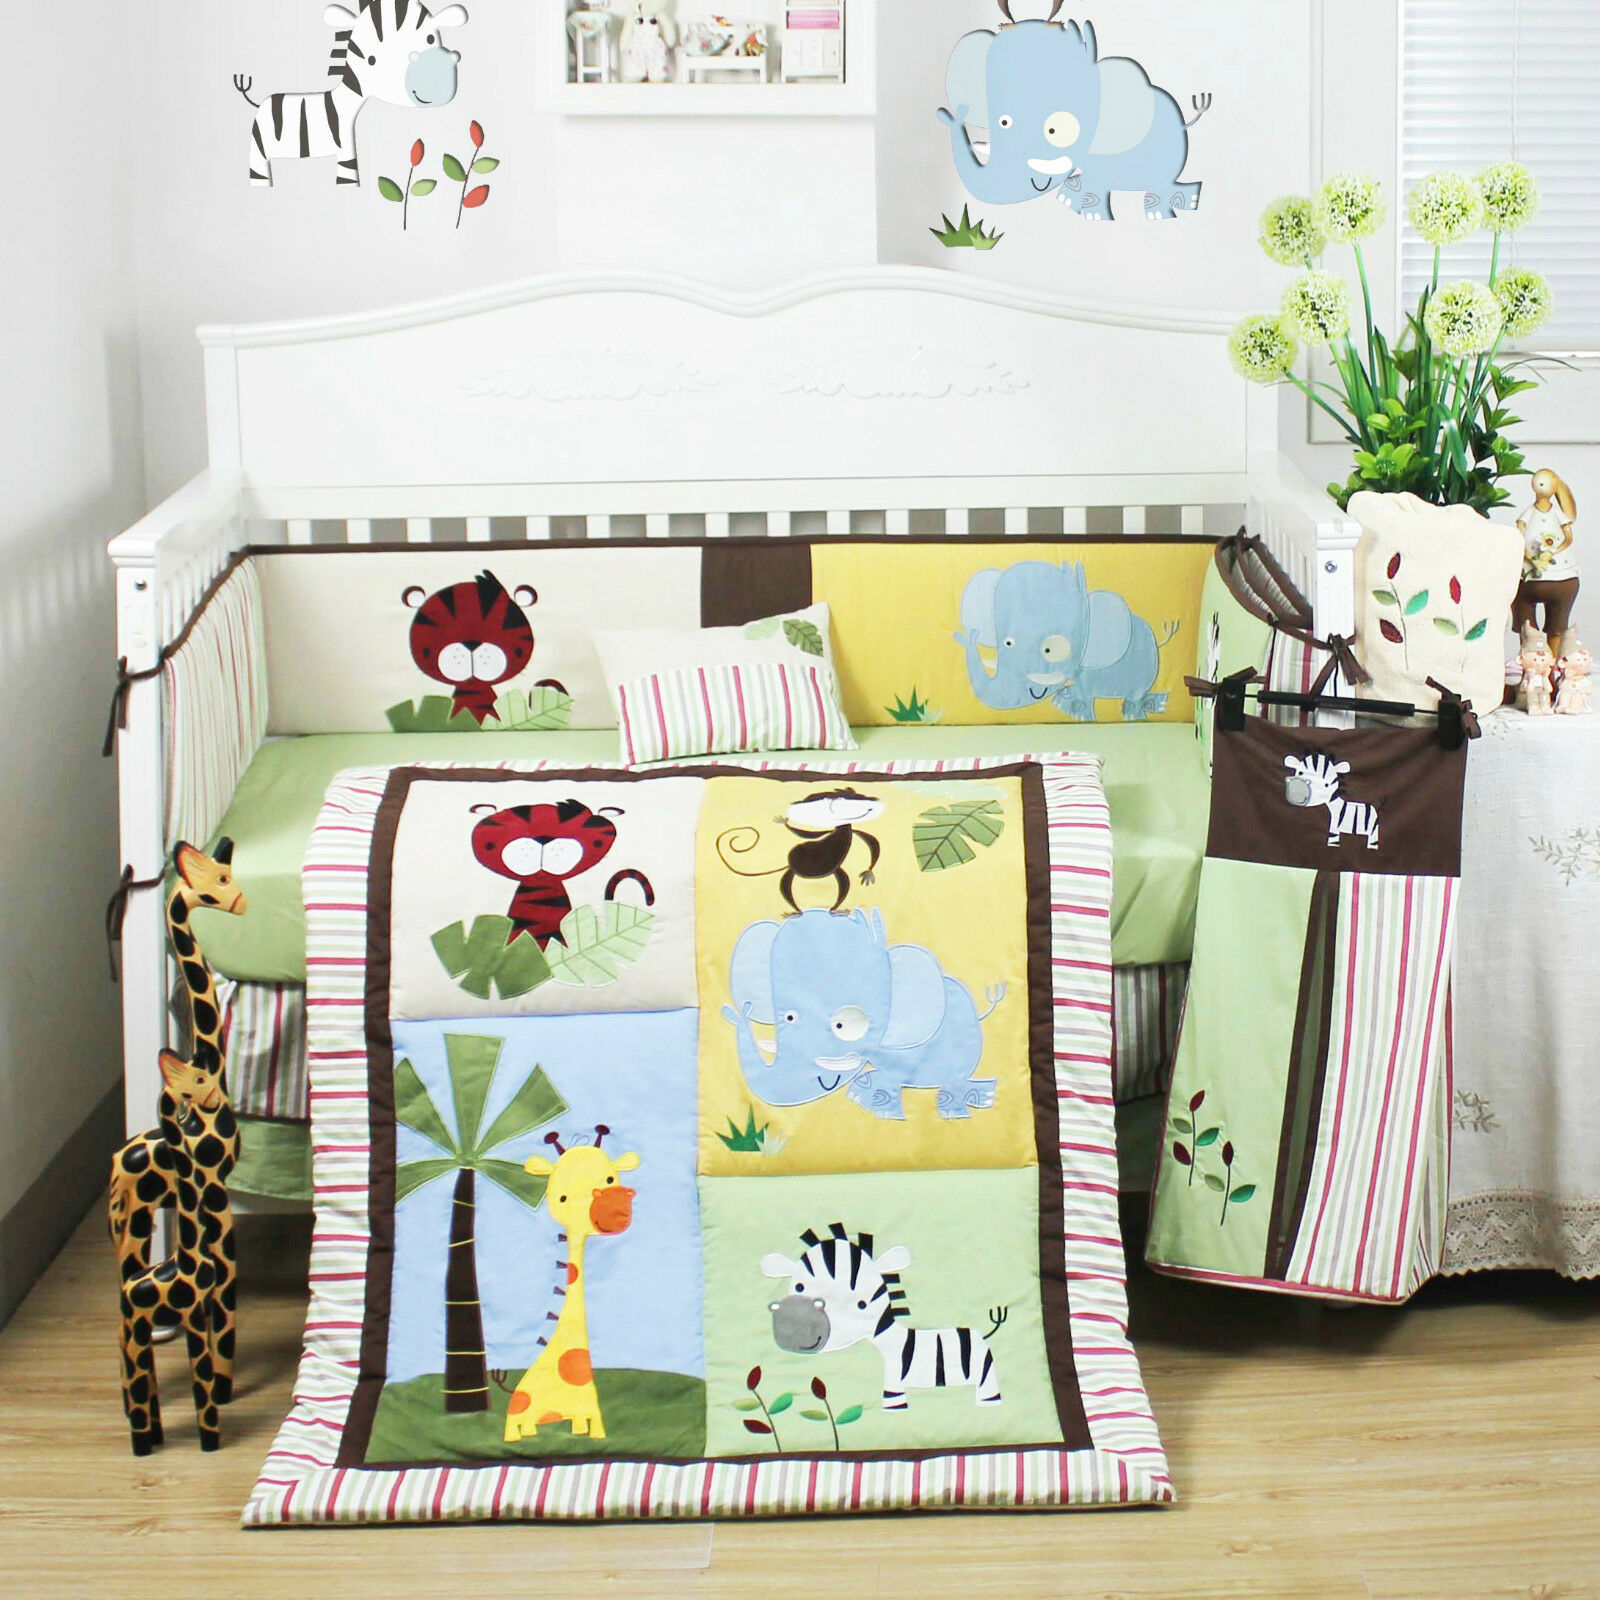 20 Beautiful Baby Boy Nursery Room Design Ideas Full Of: 8 Pcs Beautiful Jungle Animal Baby Boy's Crib Cot Bedding